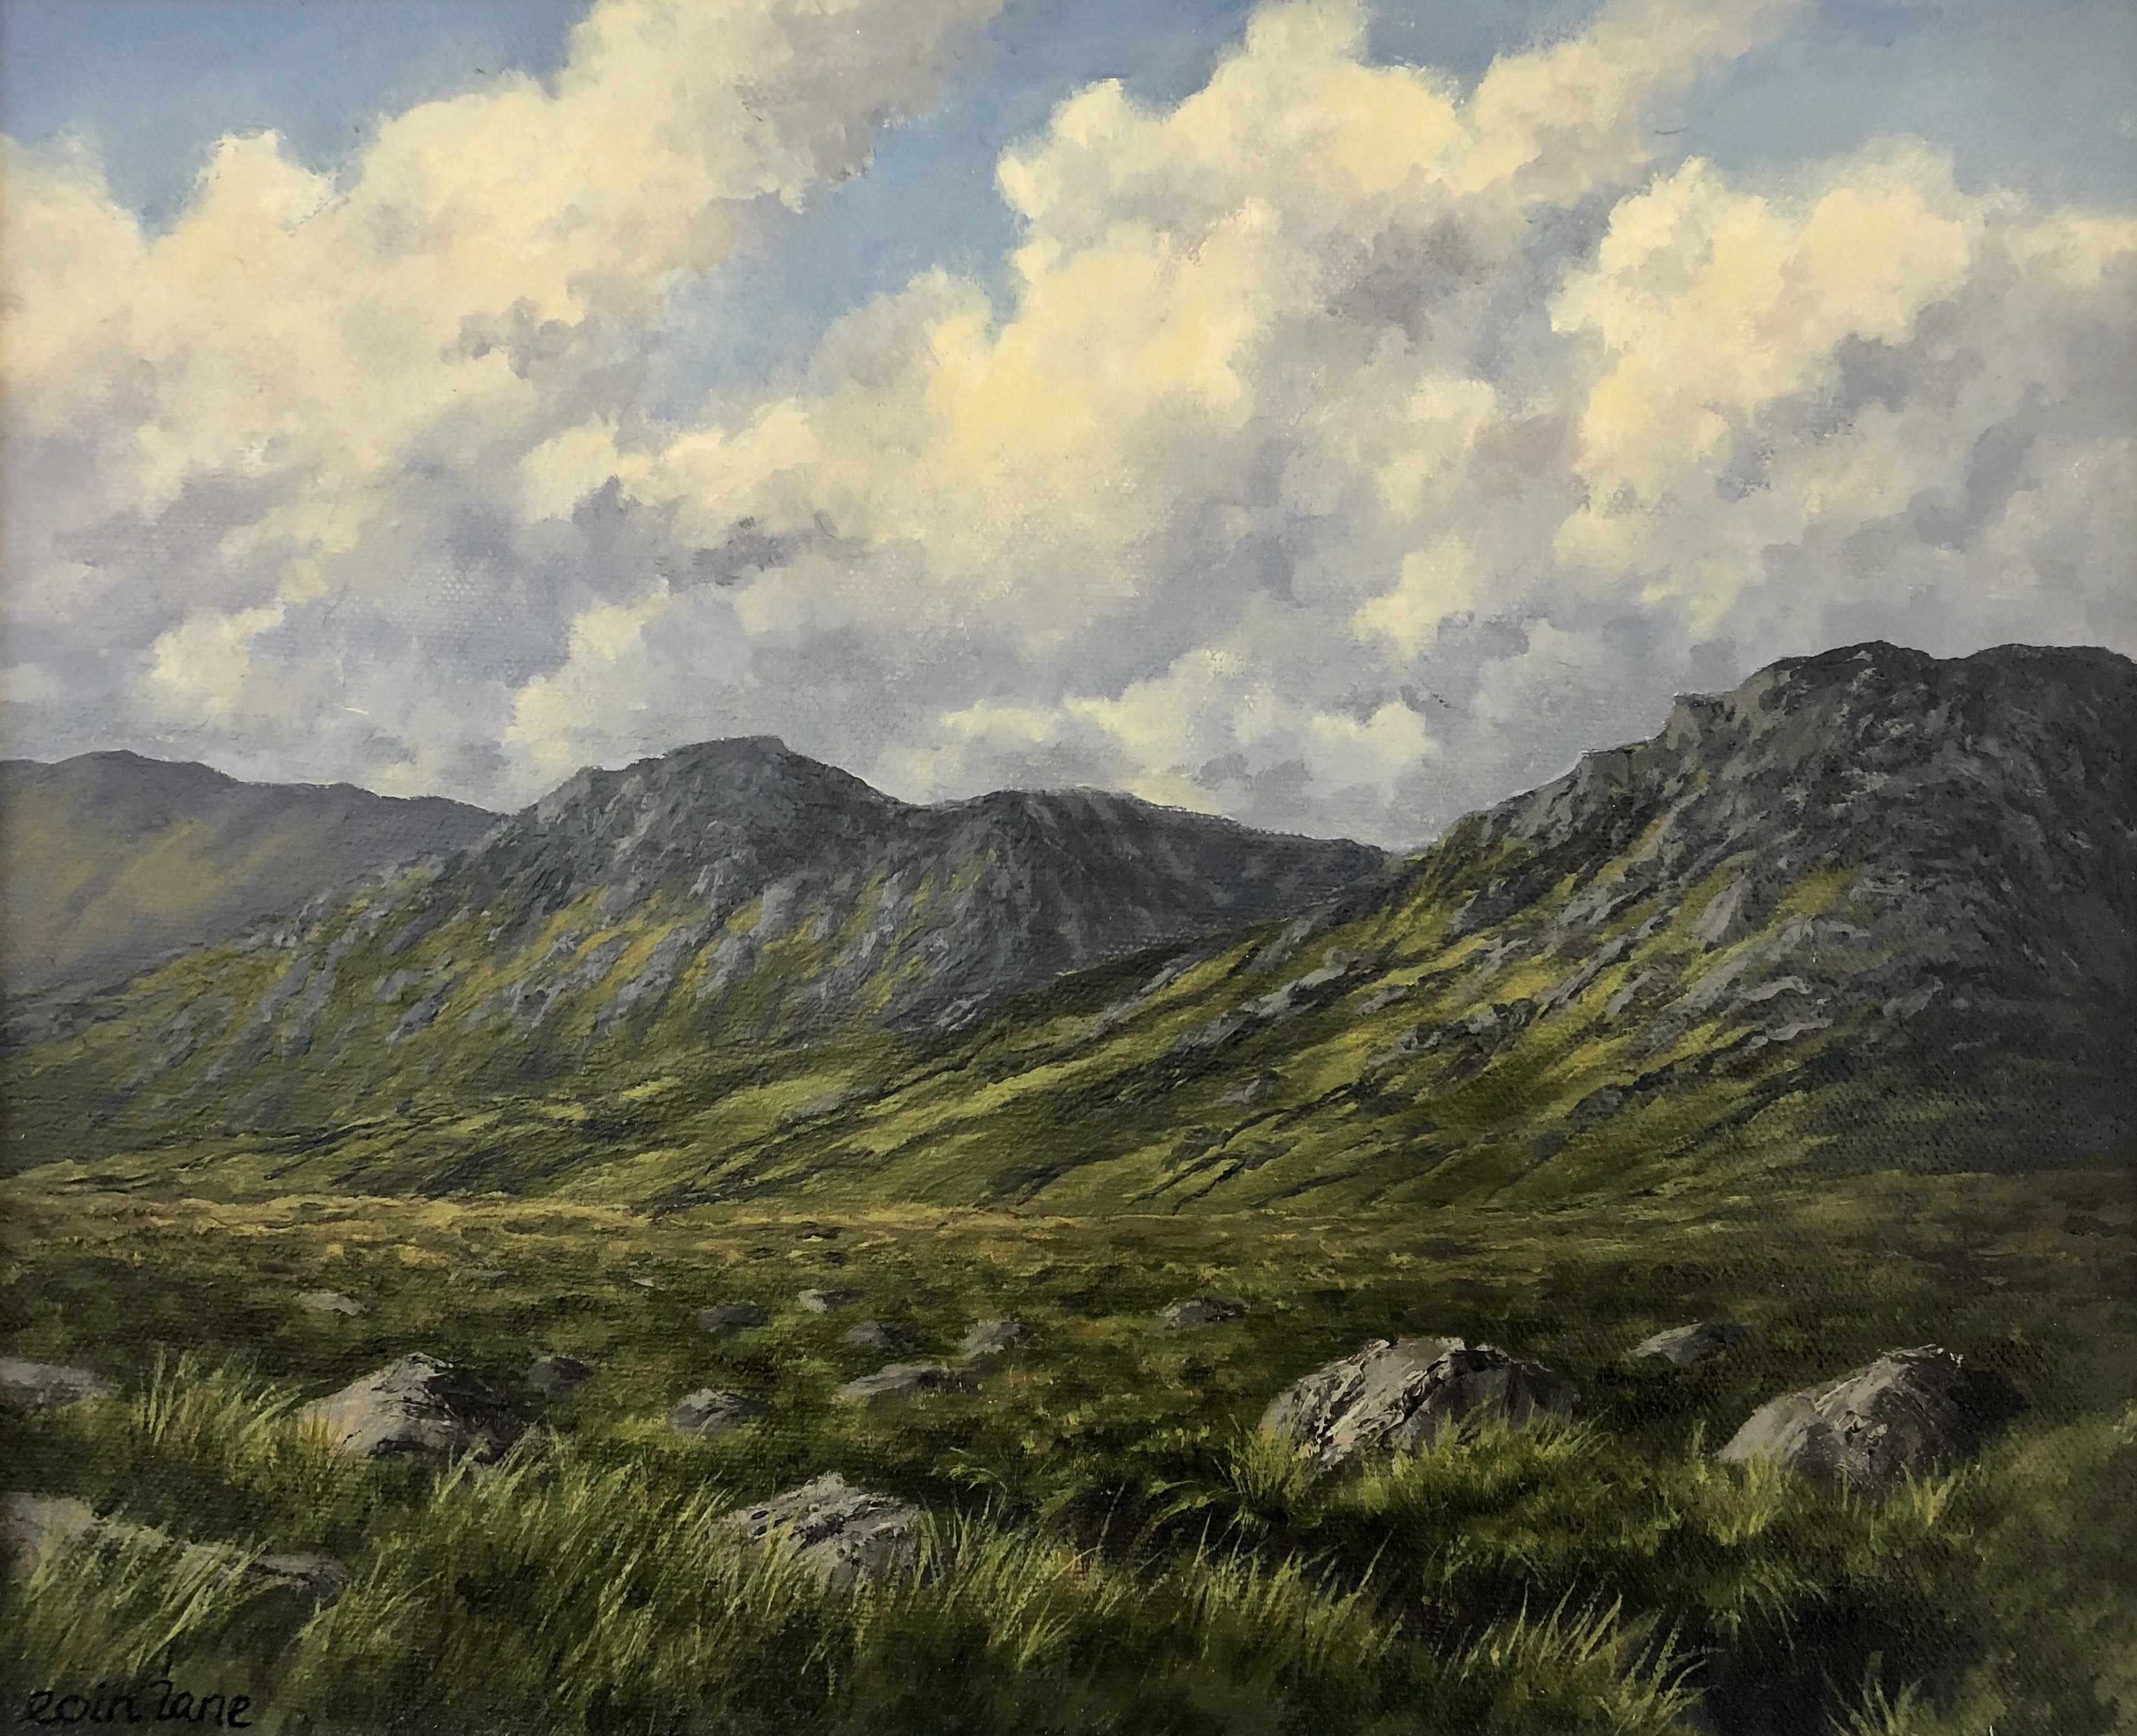 Currywongaun, Tully Cross, Connemara by Eoin Lane